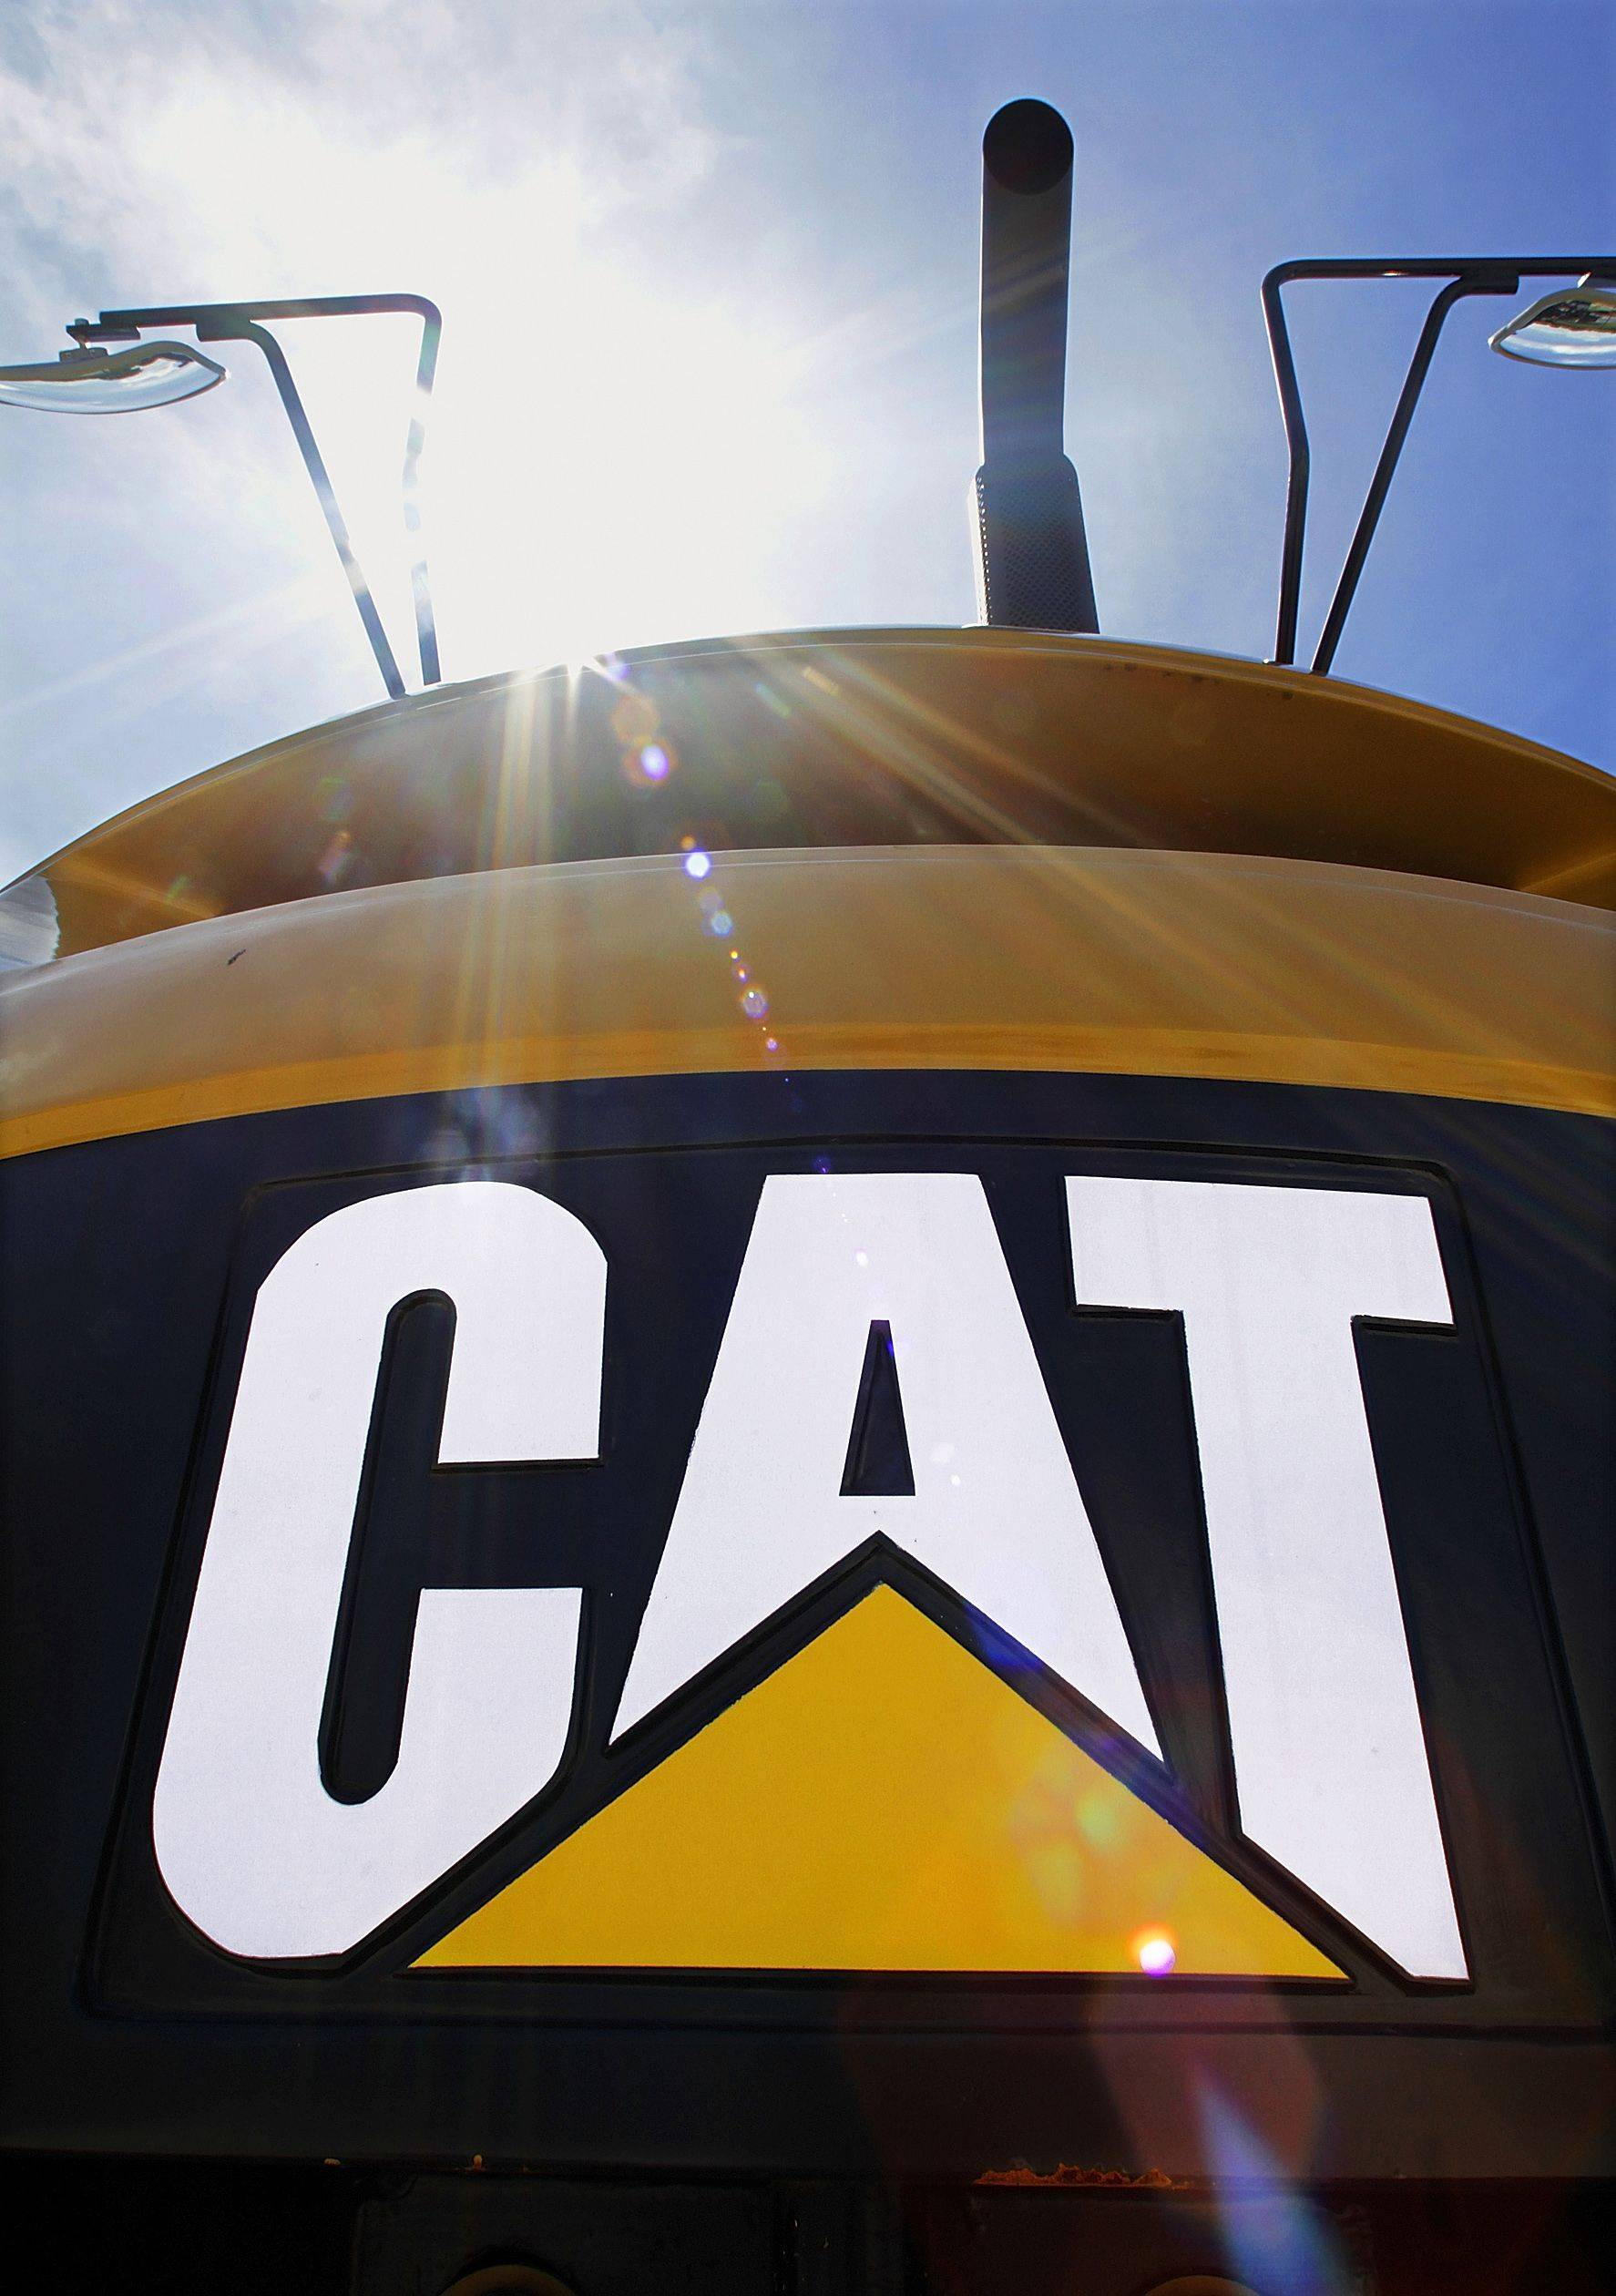 Peoria-based Caterpillar�s global heavy equipment sales rose 34 percent in August.